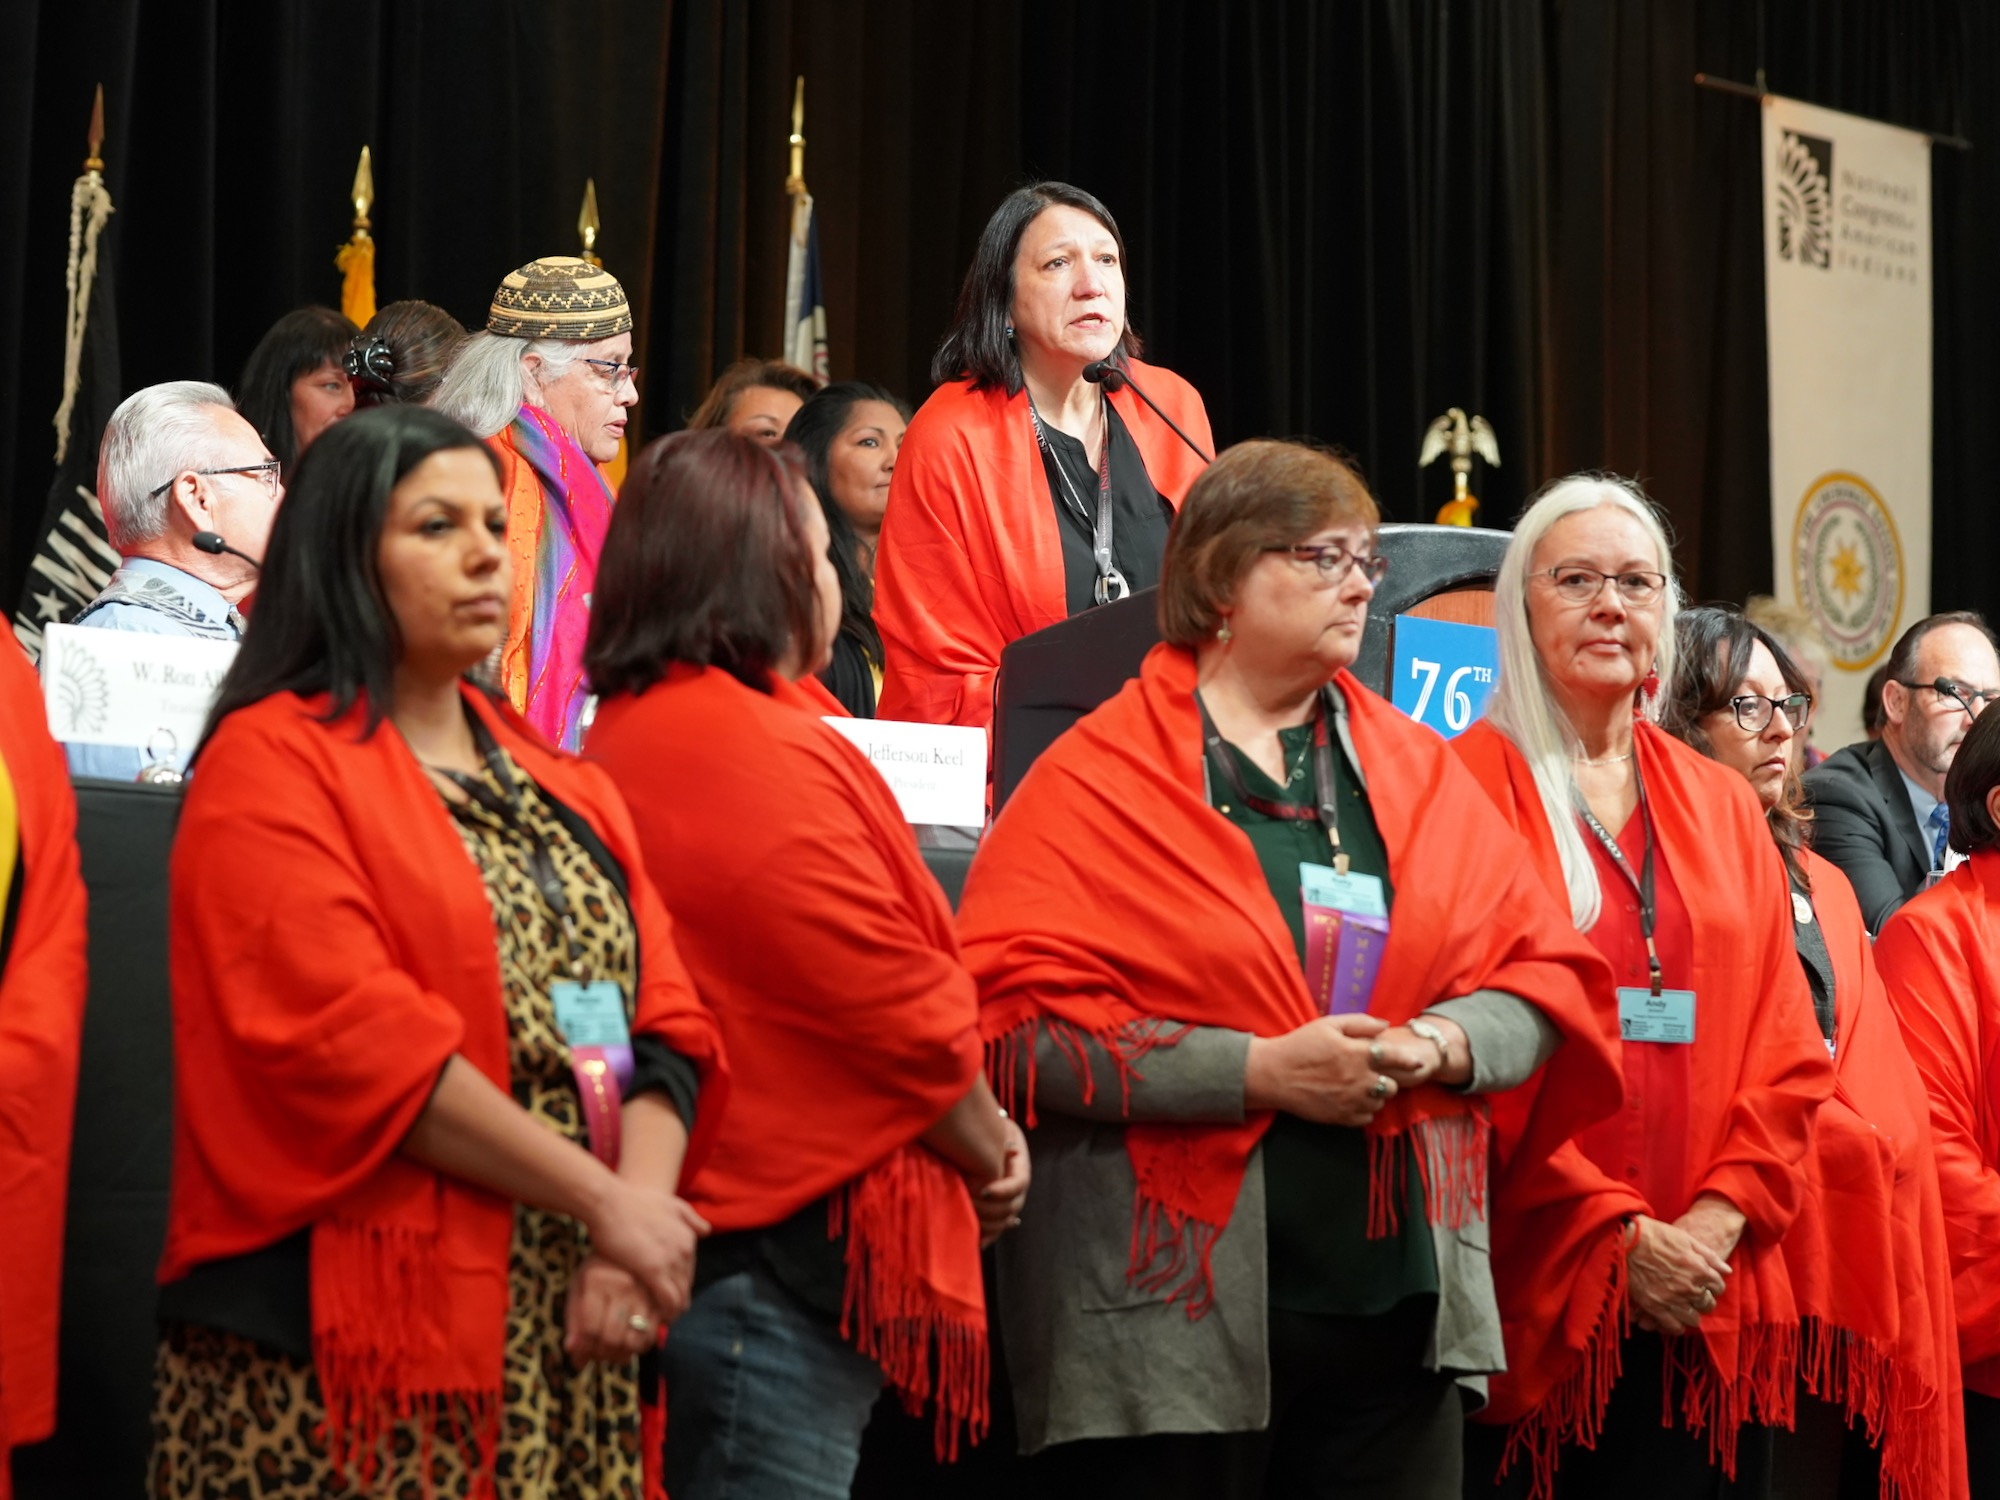 Senate committee takes up #MMIW bills amid doubts about protections for Native women